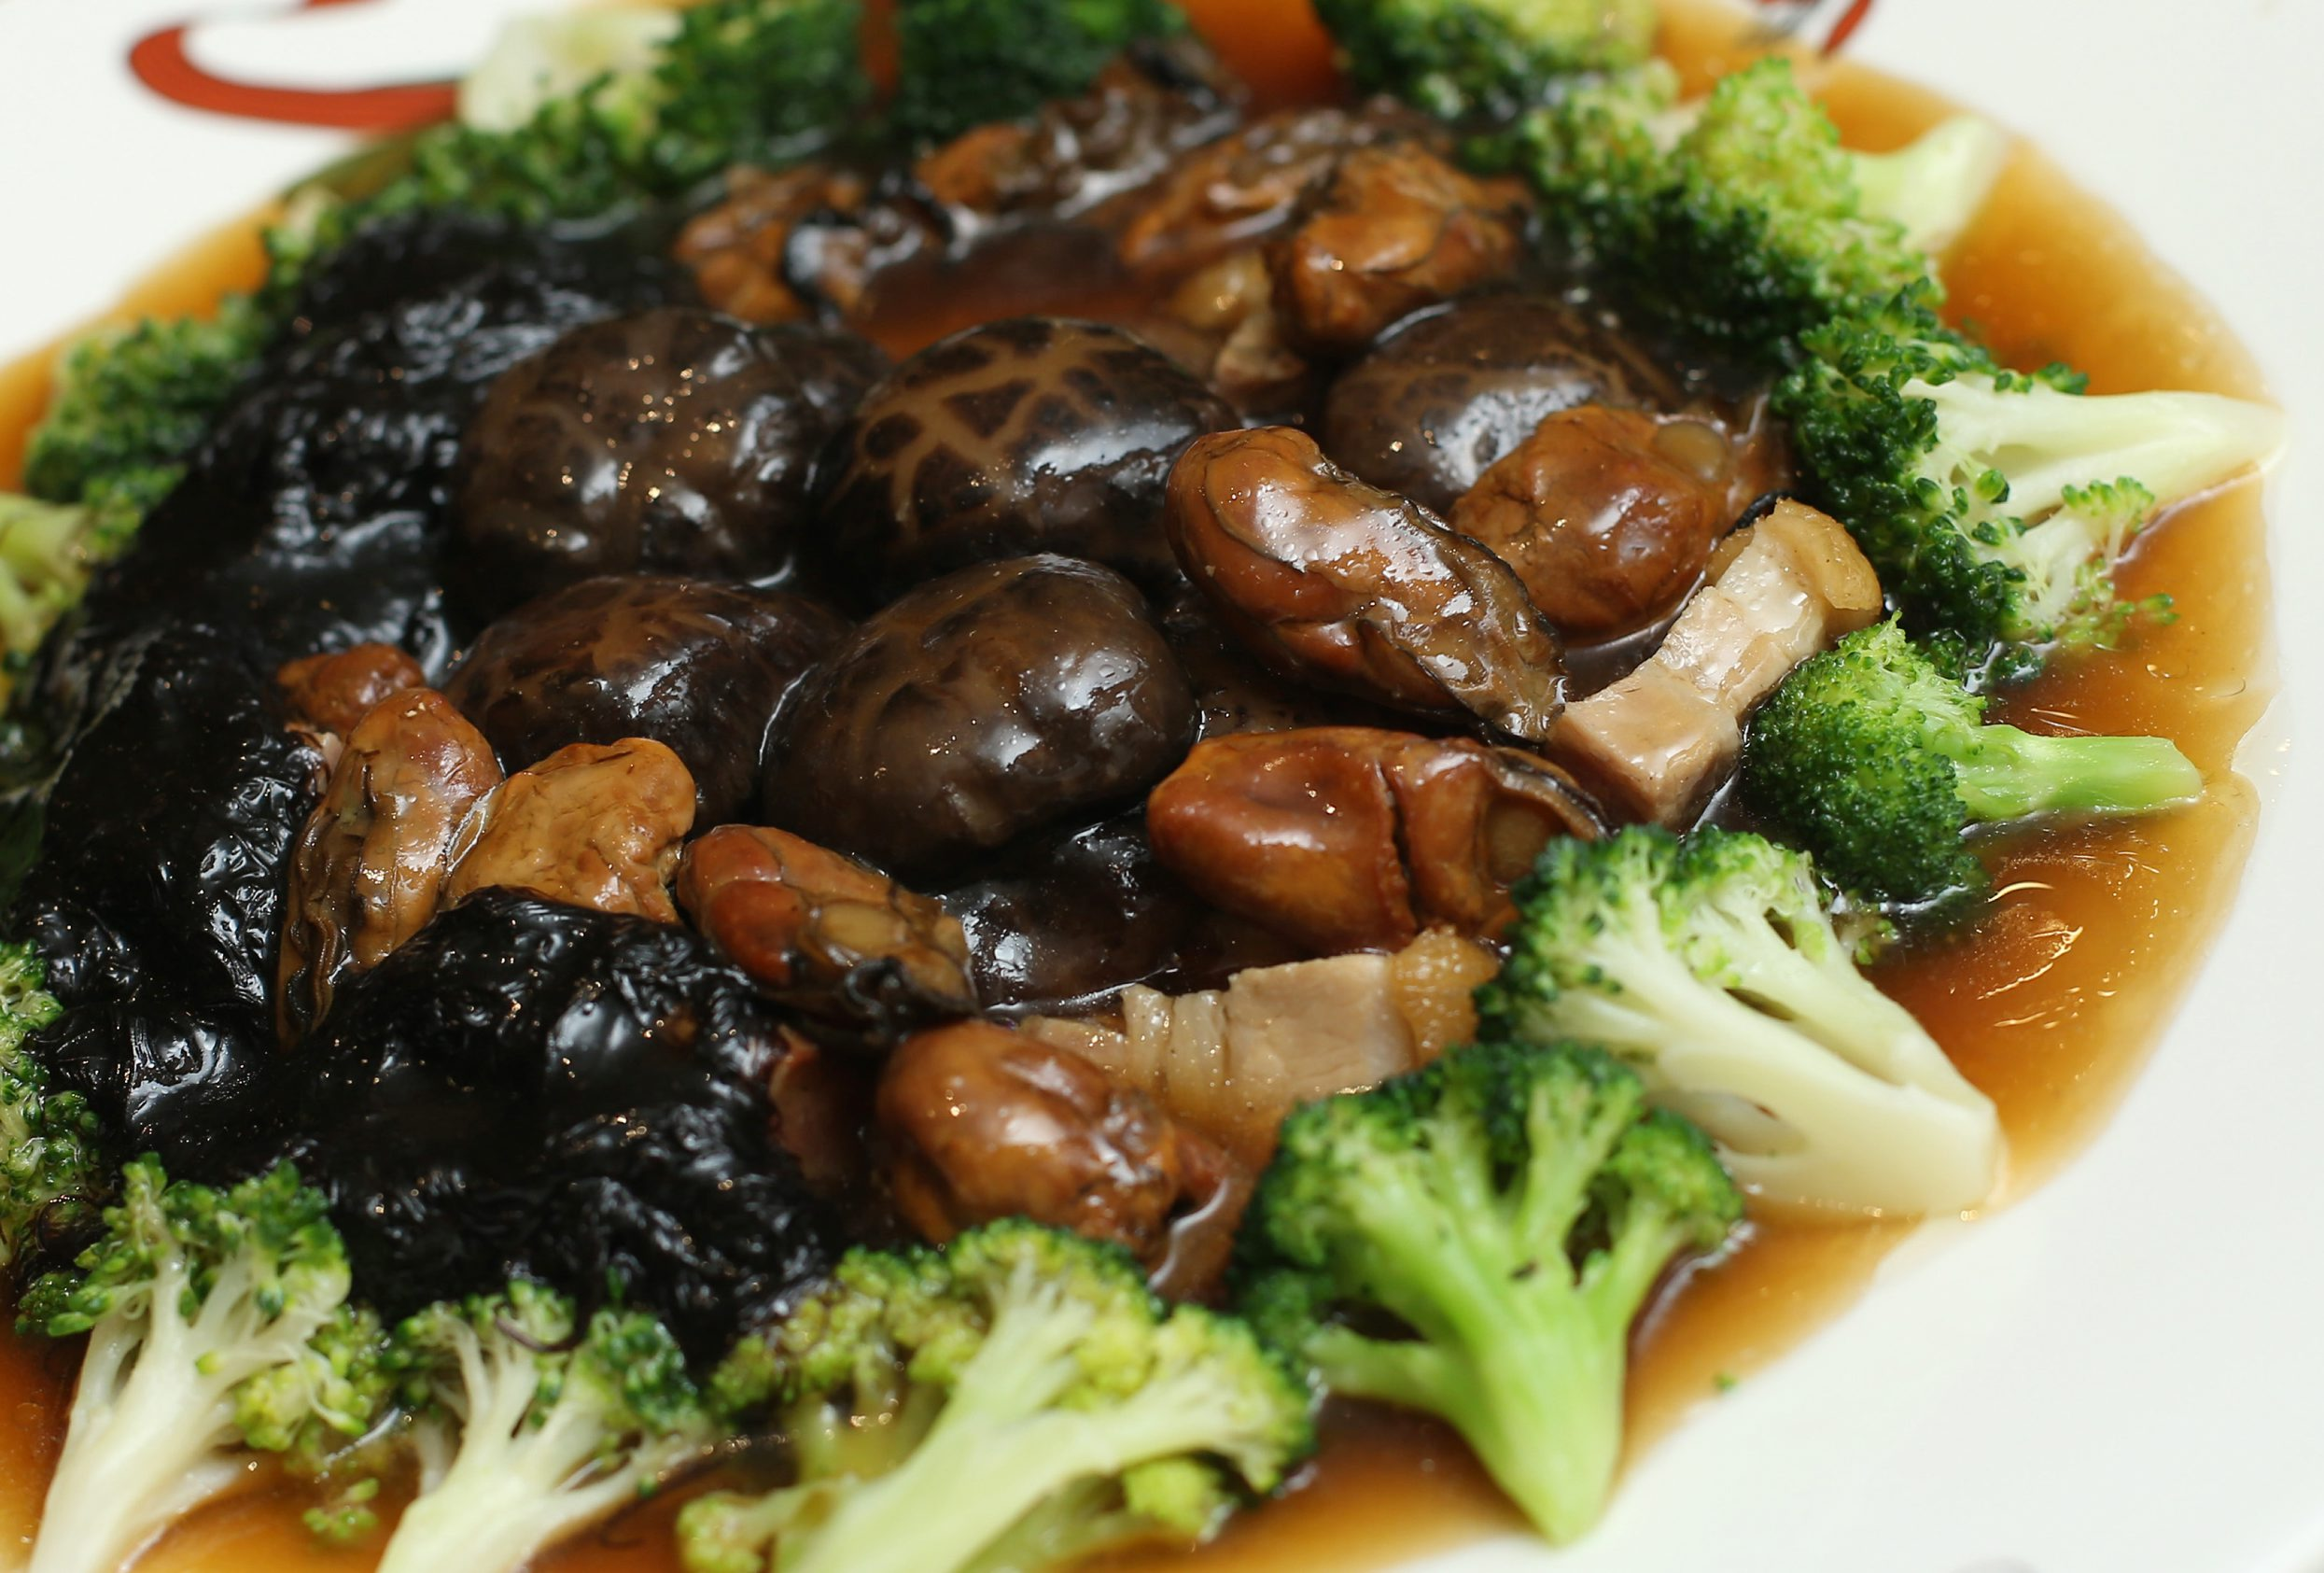 Fatt choy braised with flower mushrooms, sun-dried oysters, broccoli, and pork.